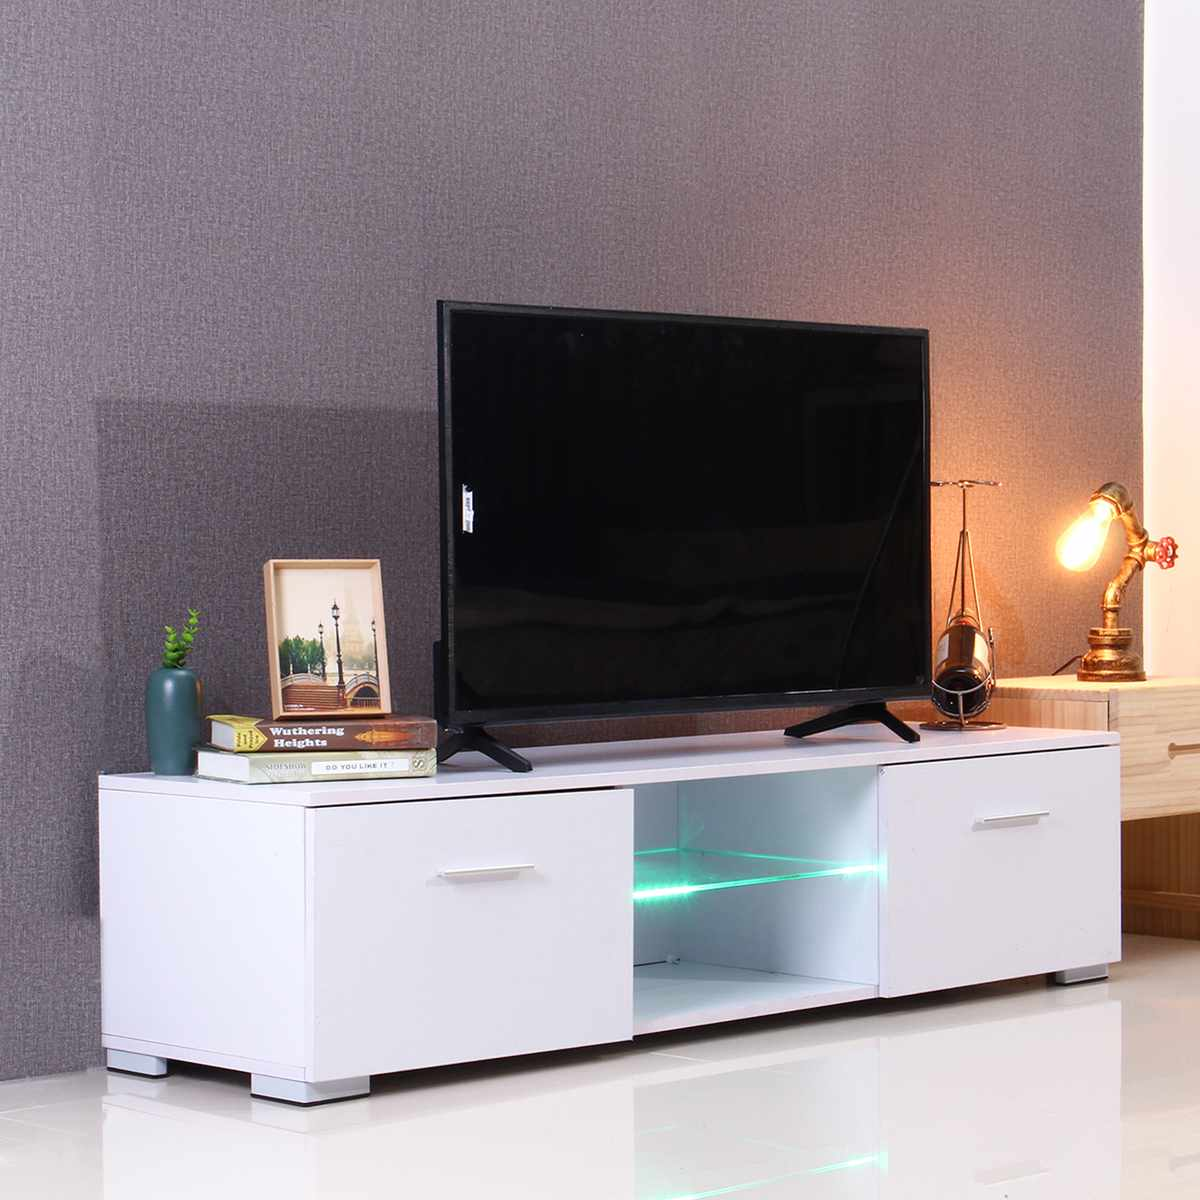 57 Inch Portable Detachable TV Stand Unit Cabinet Console With LED Light Shelves 2 Drawers For Living Room Black US Shipping